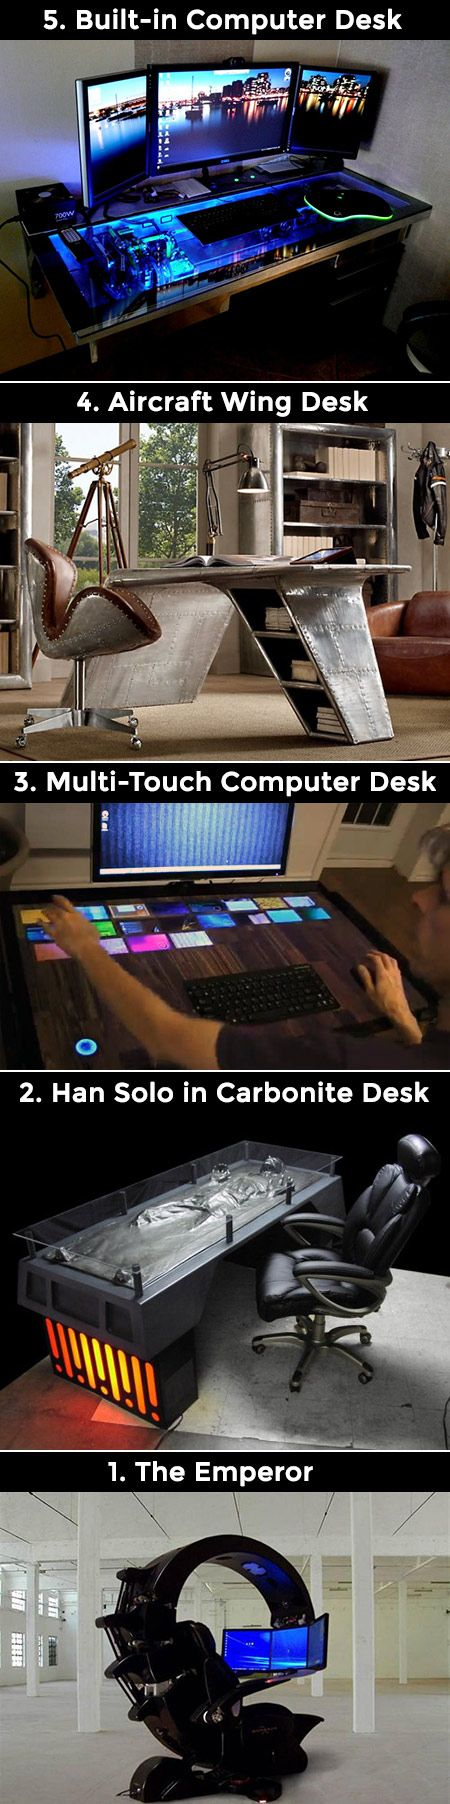 Most computer desks are boring, these five take creativity to the next level.